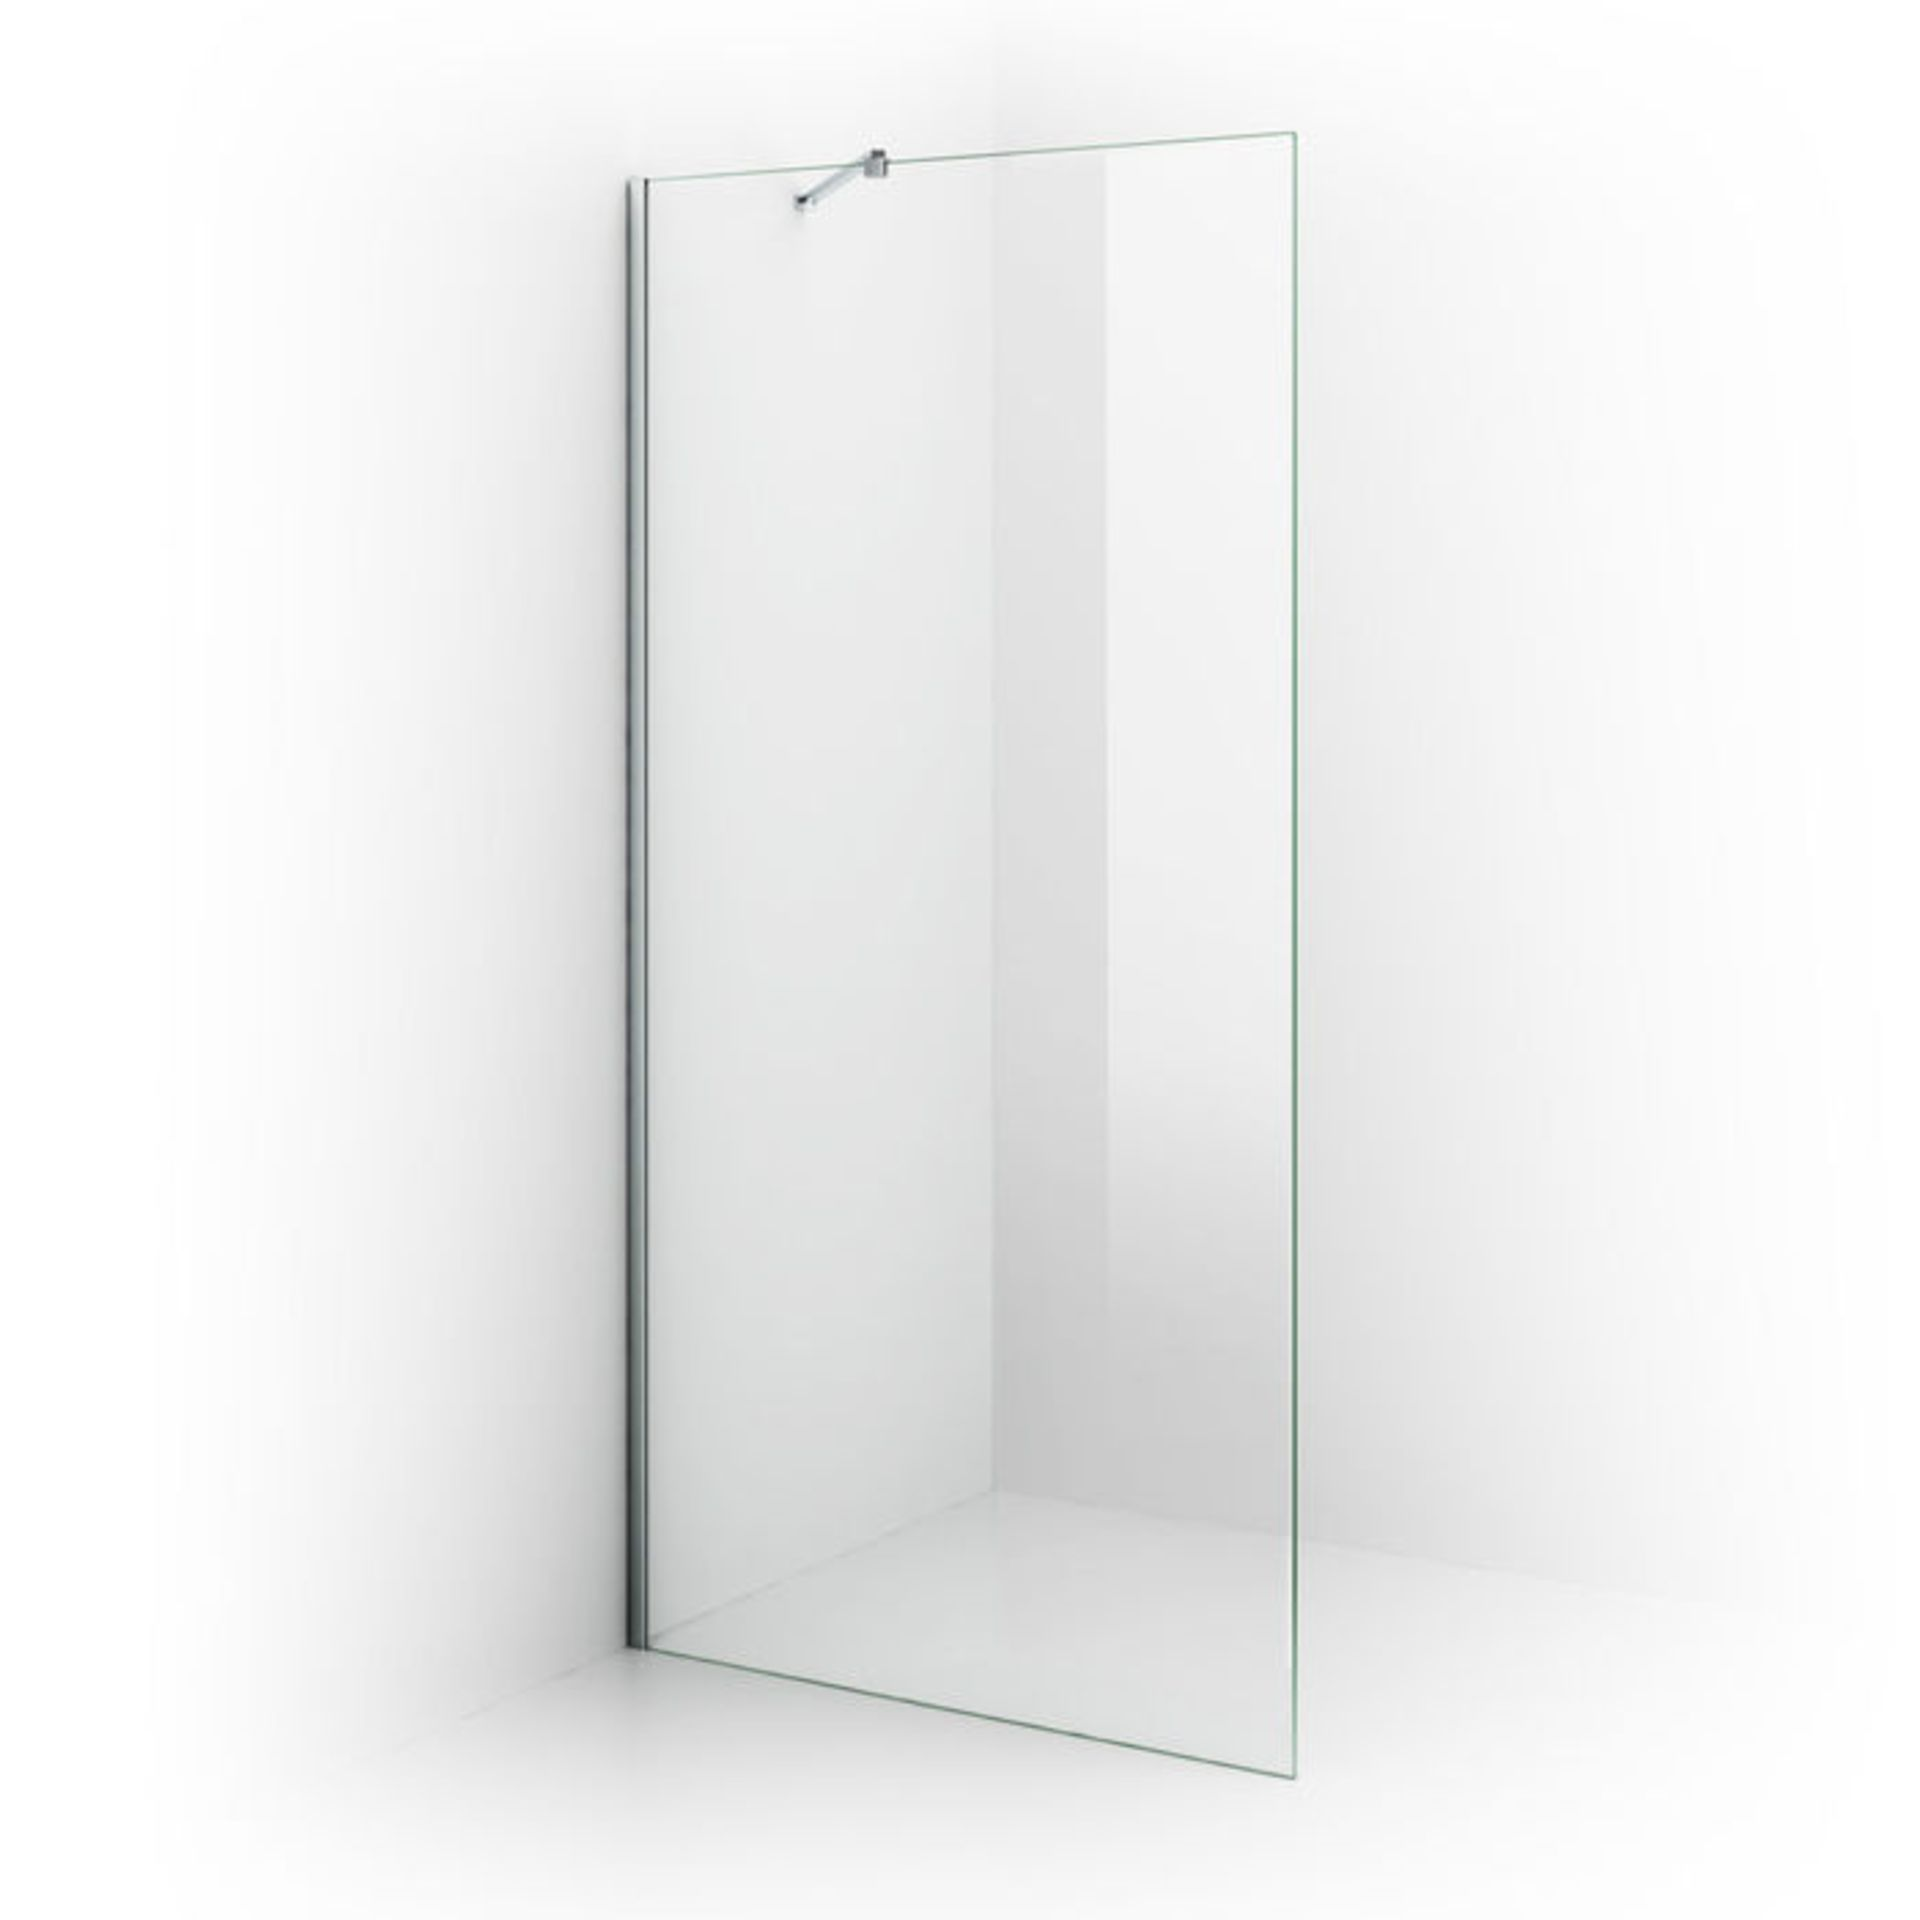 Lot 38 - (XX25) 1200mm - 8mm - Premium EasyClean Wetroom Panel. RRP £499.99. 8mm EasyClean glass - Our ...